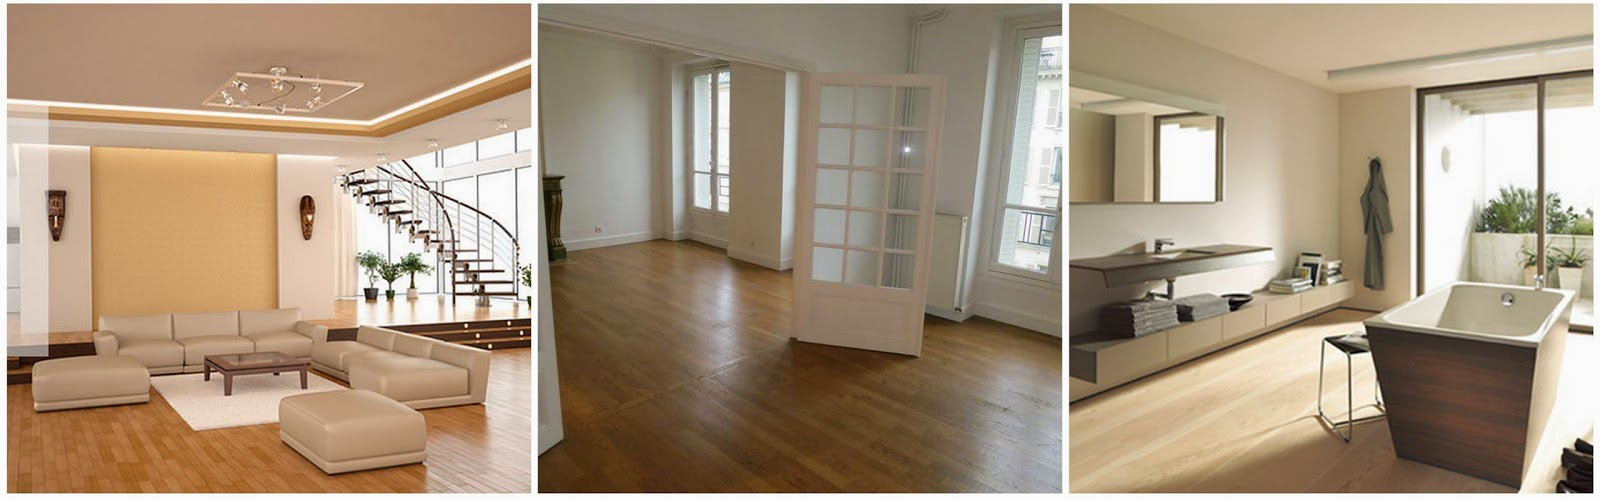 Travaux appartement 92140 clamart